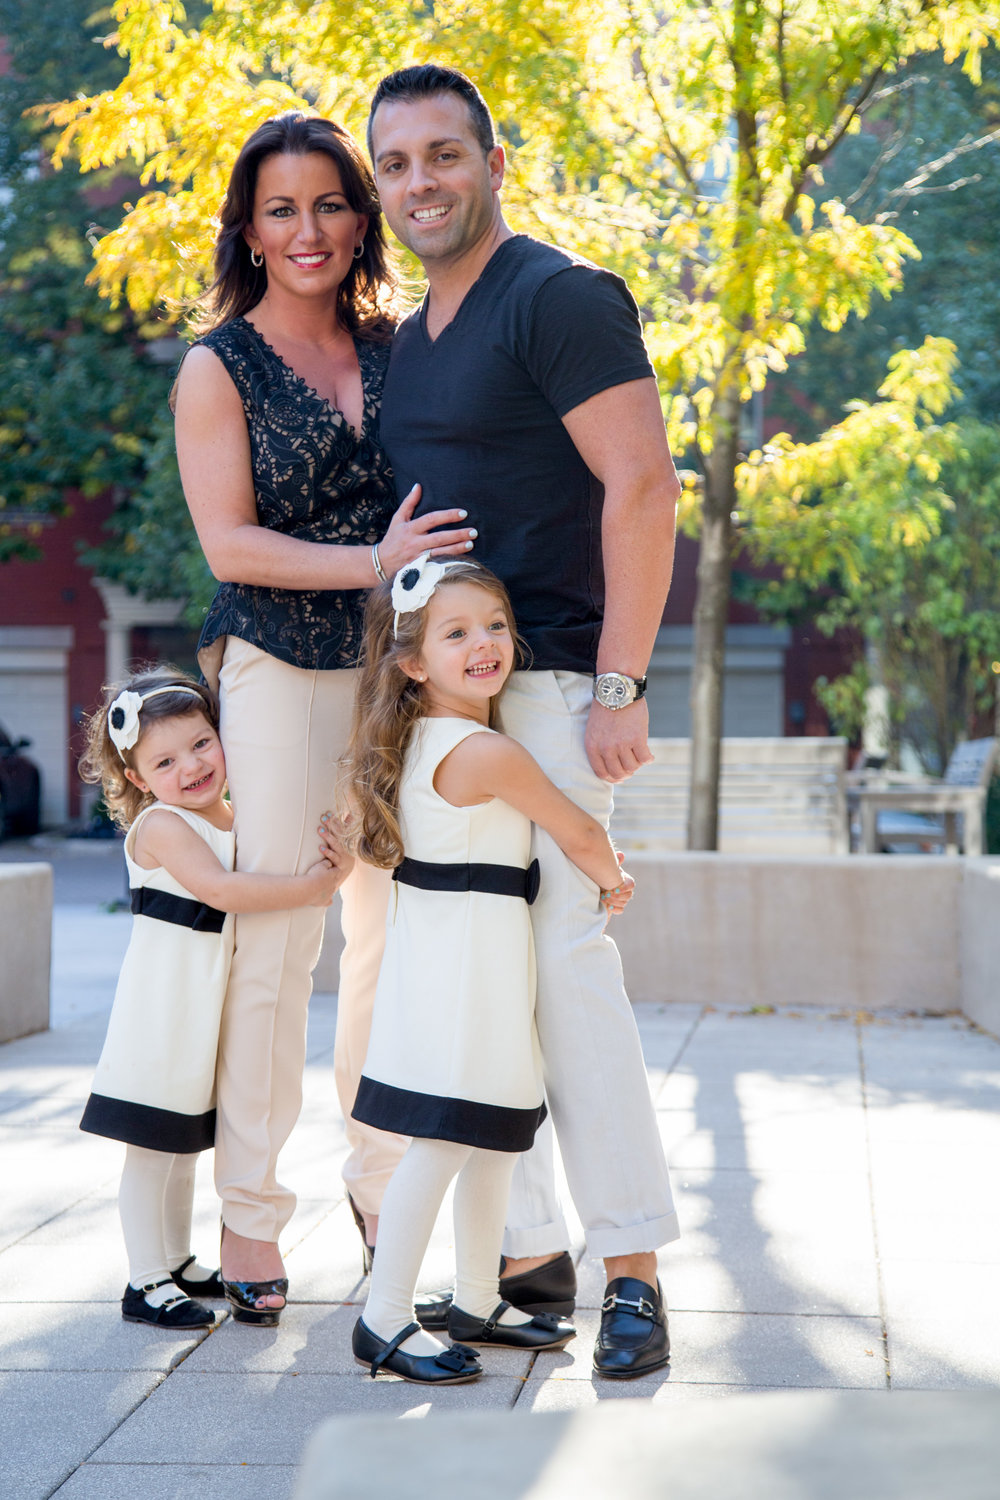 Family Portrait Photographer San Diego Dana Frames Photo + Design